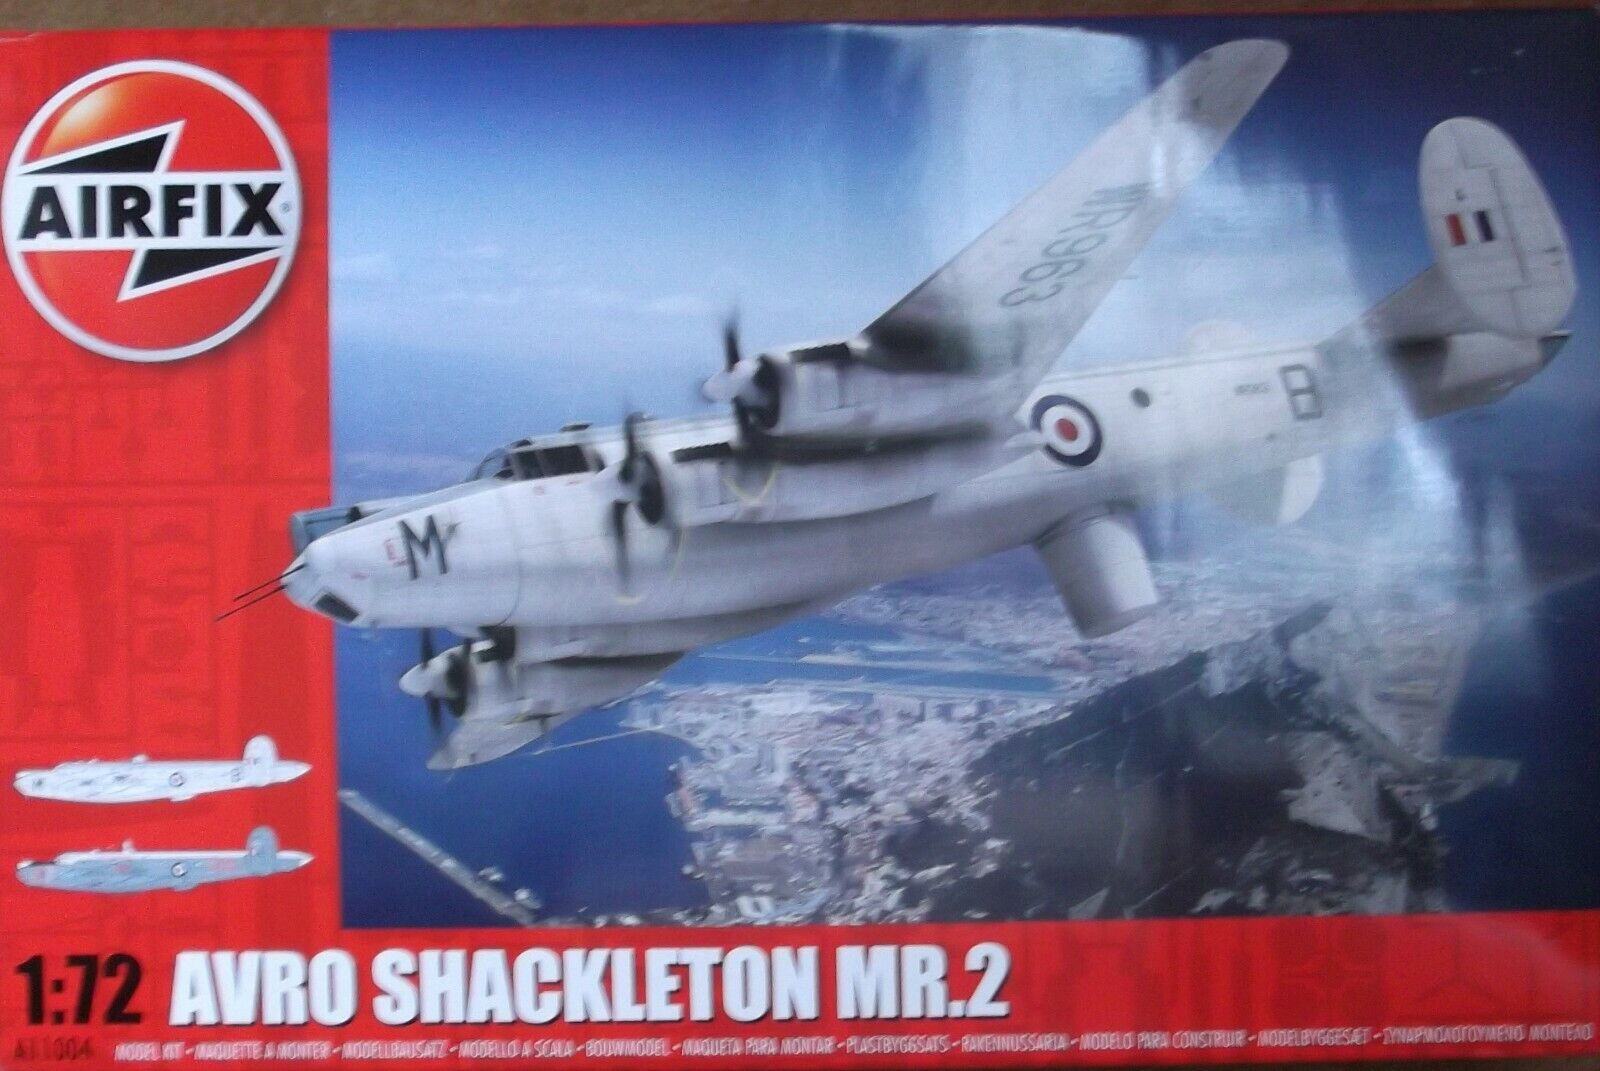 +++ AVRO SHACKLETON MR.2 + 1 72 SCALE KIT by AIRFIX +++